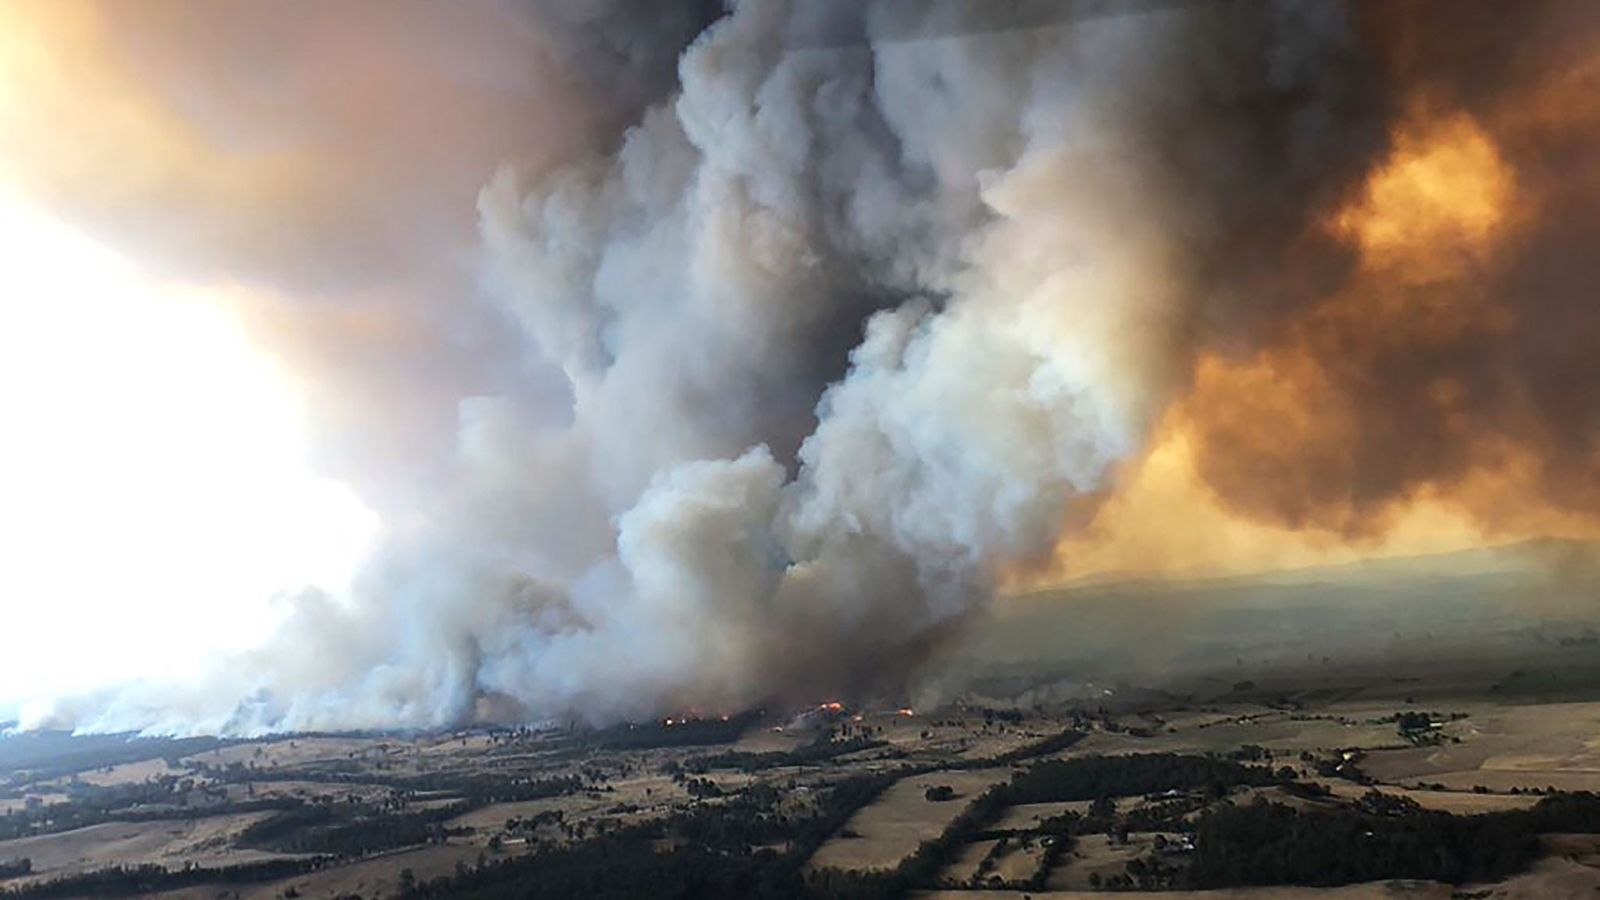 On December 30, 2019, wildfires raged under plumes of smoke in Bairnsdale, Australia. Thousands of tourists ...